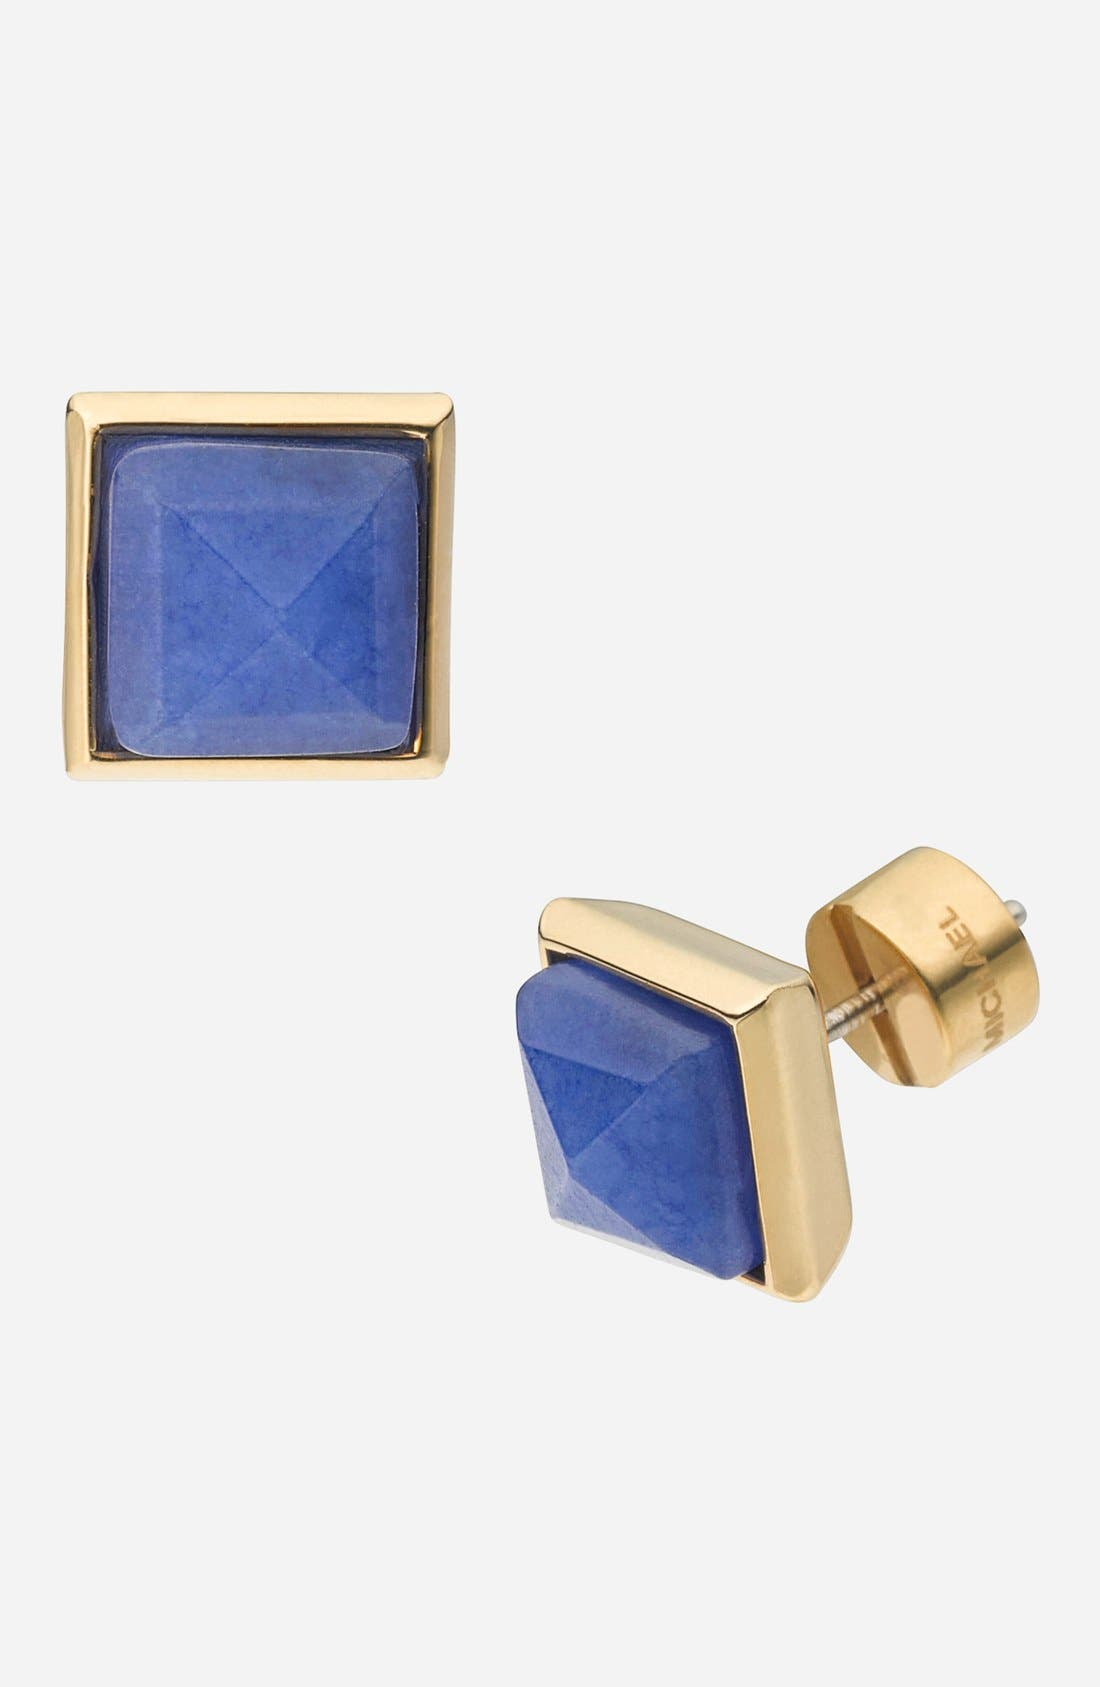 Main Image - Michael Kors 'Glam Rock' Stone Pyramid Stud Earrings